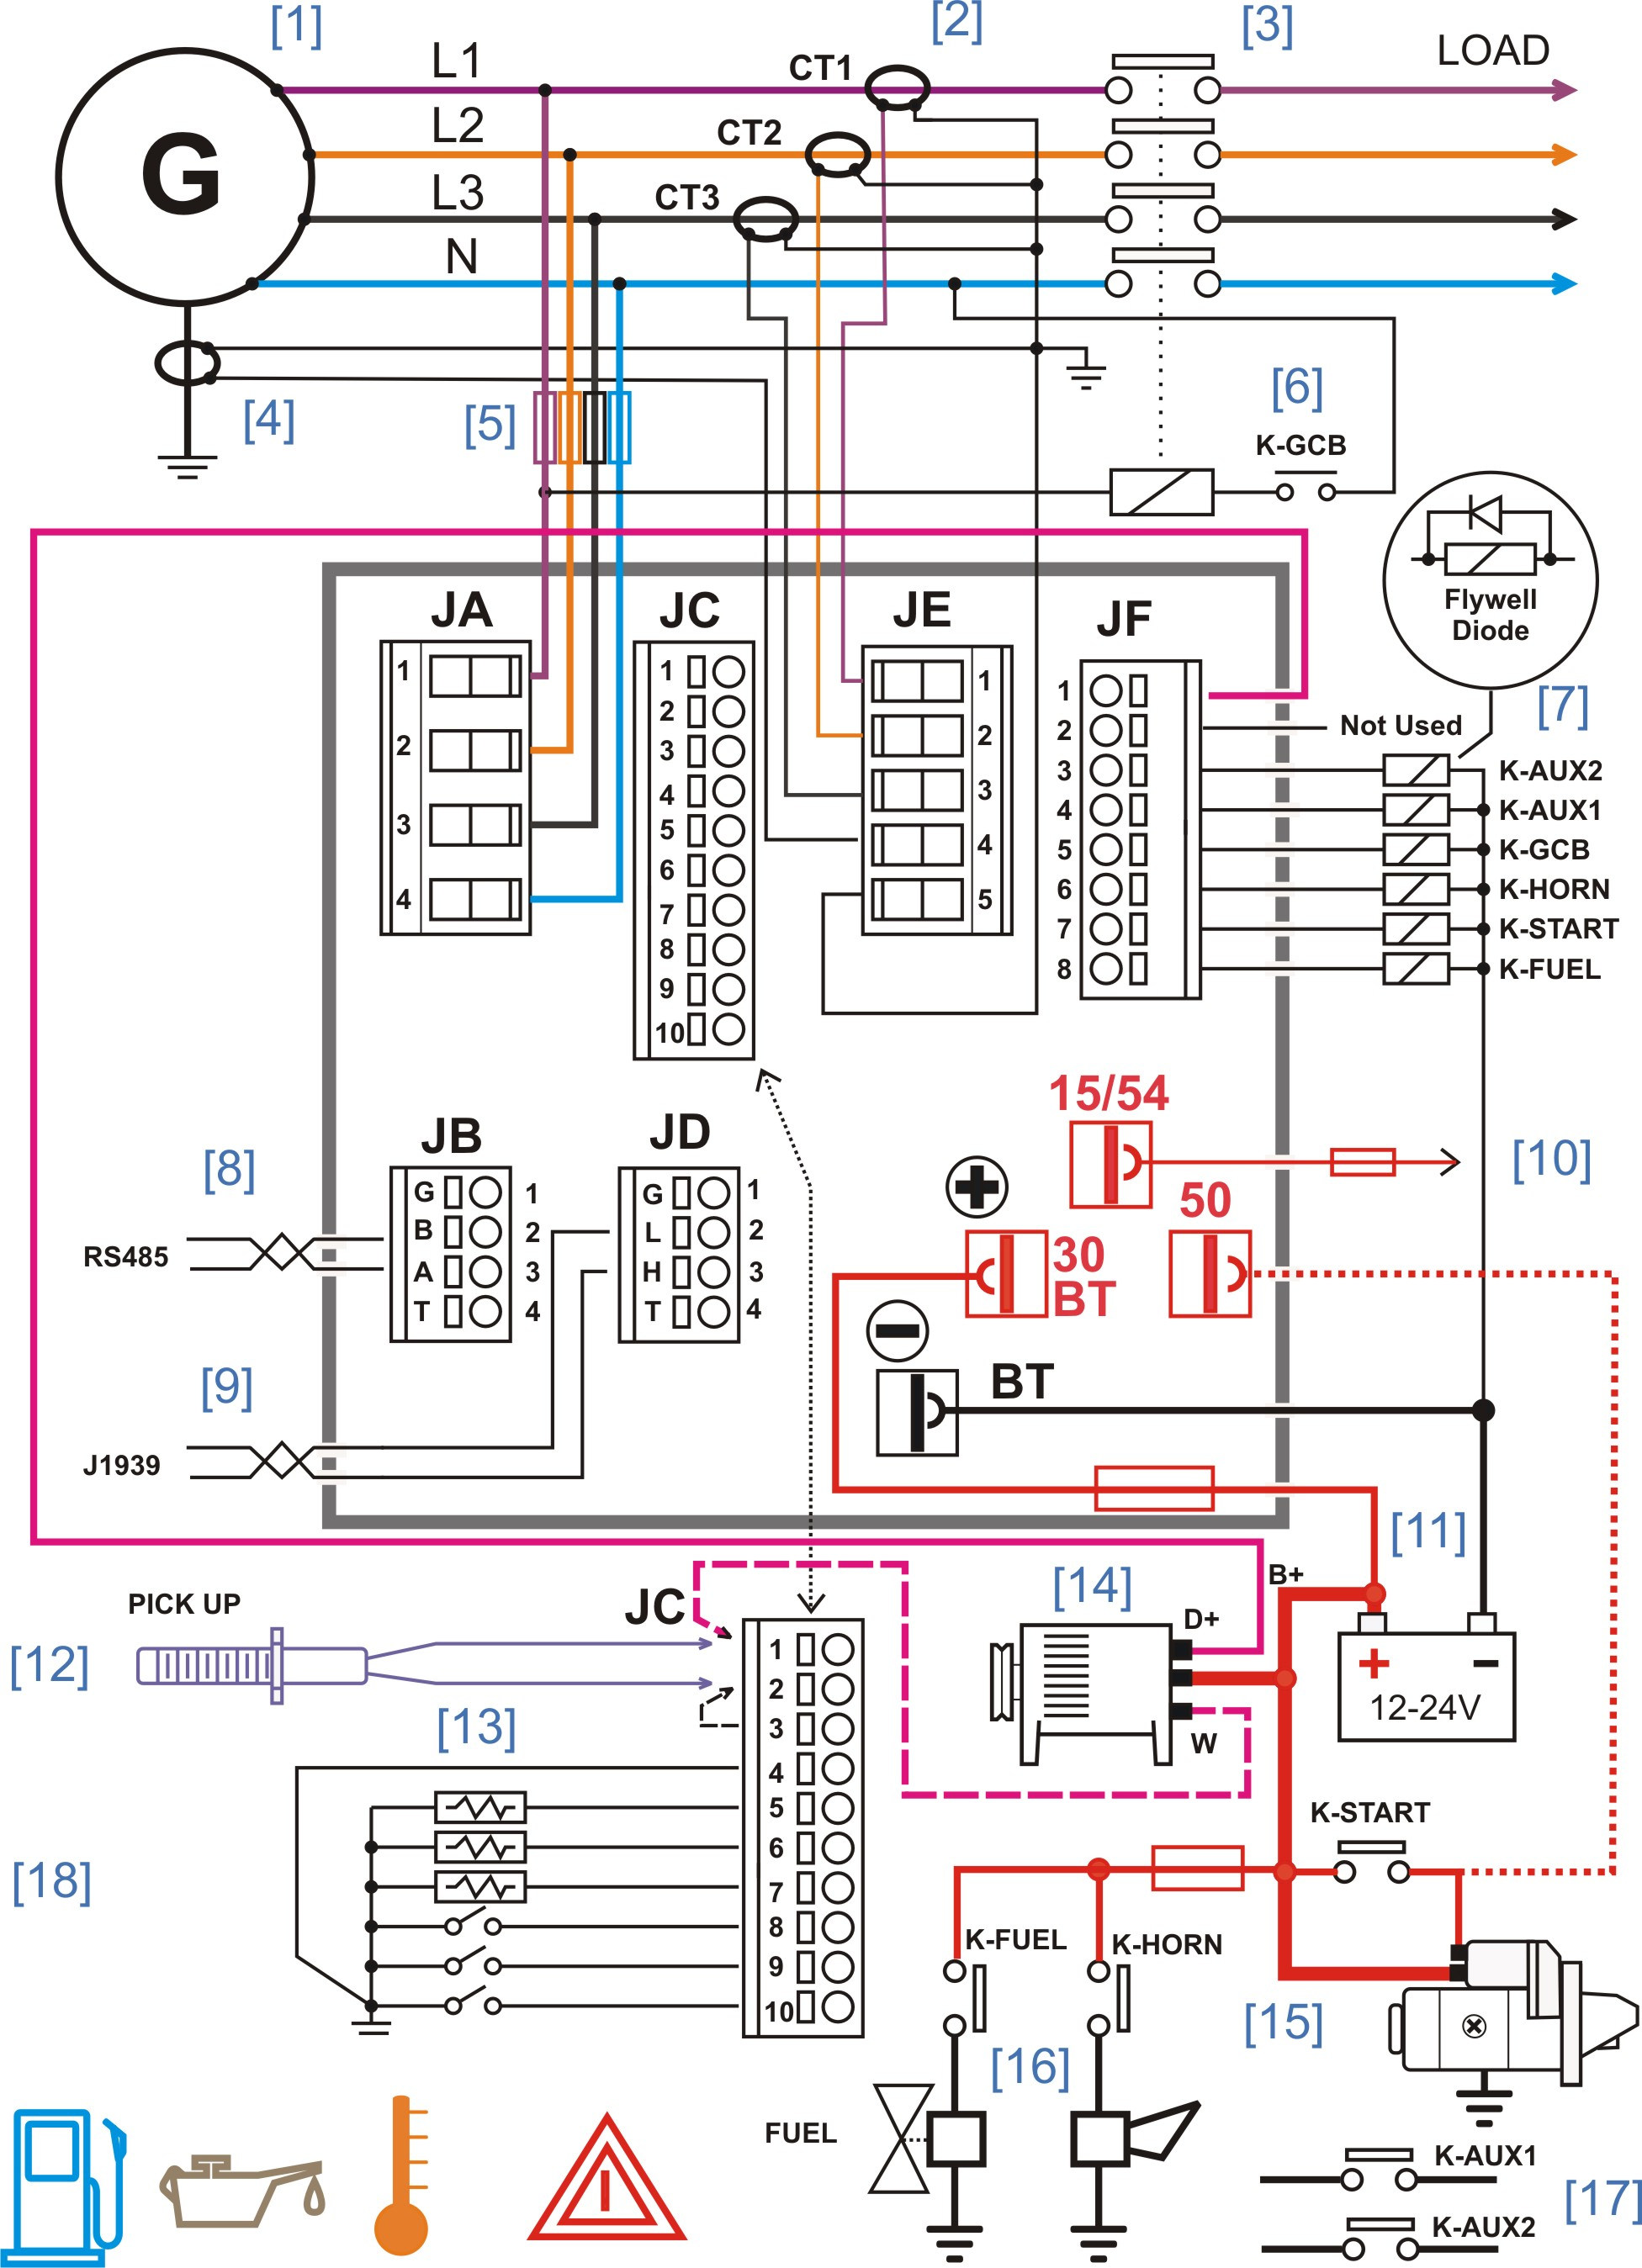 reliance transfer switch wiring diagram reliance wiring diagram for a manual transfer switch the wiring diagram on reliance transfer switch wiring diagram